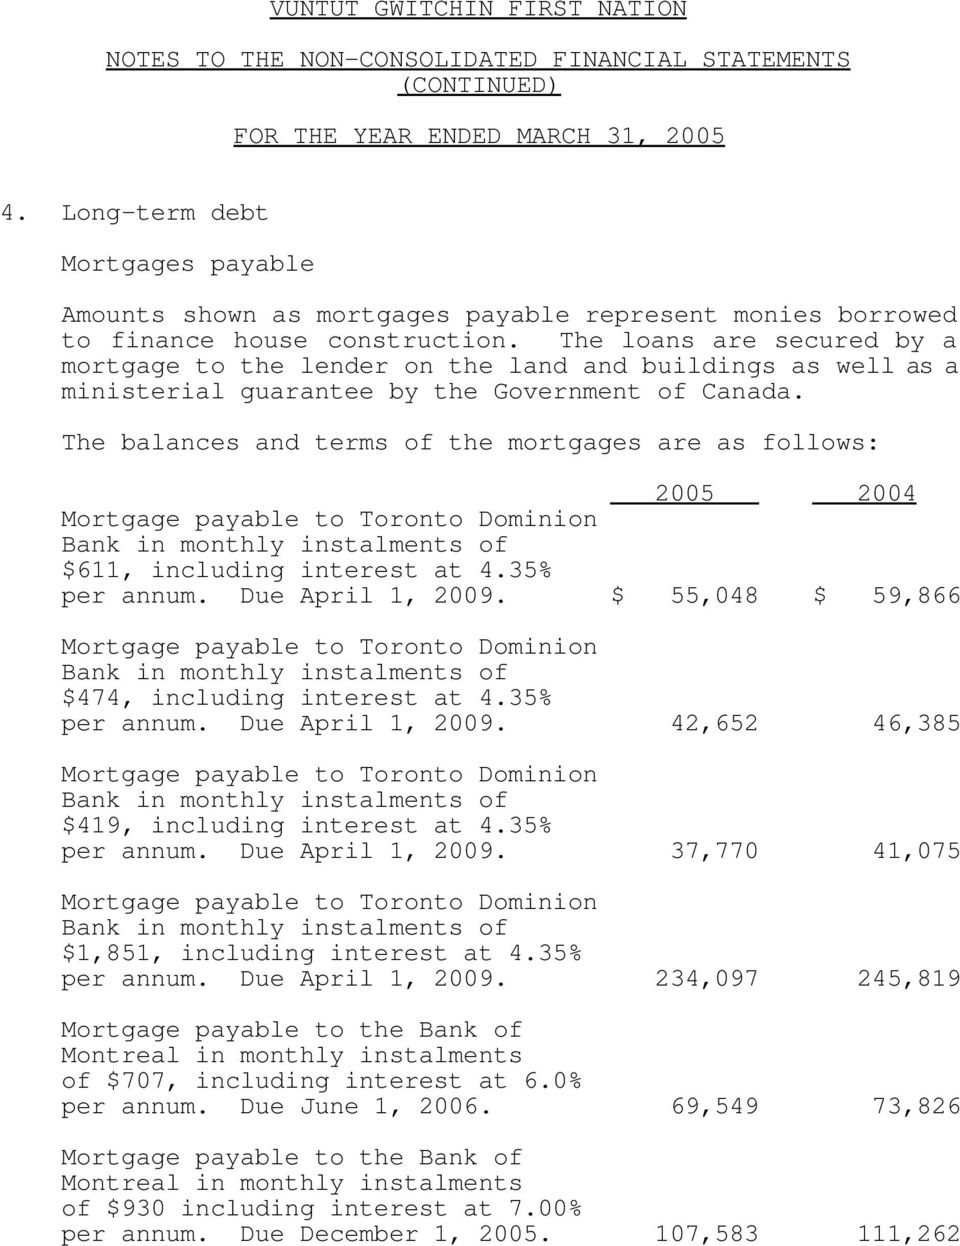 The balances and terms of the mortgages are as follows: 2005 2004 $611, including interest at 4.35% per annum. Due April 1, 2009. $ 55,048 $ 59,866 $474, including interest at 4.35% per annum. Due April 1, 2009. 42,652 46,385 $419, including interest at 4.